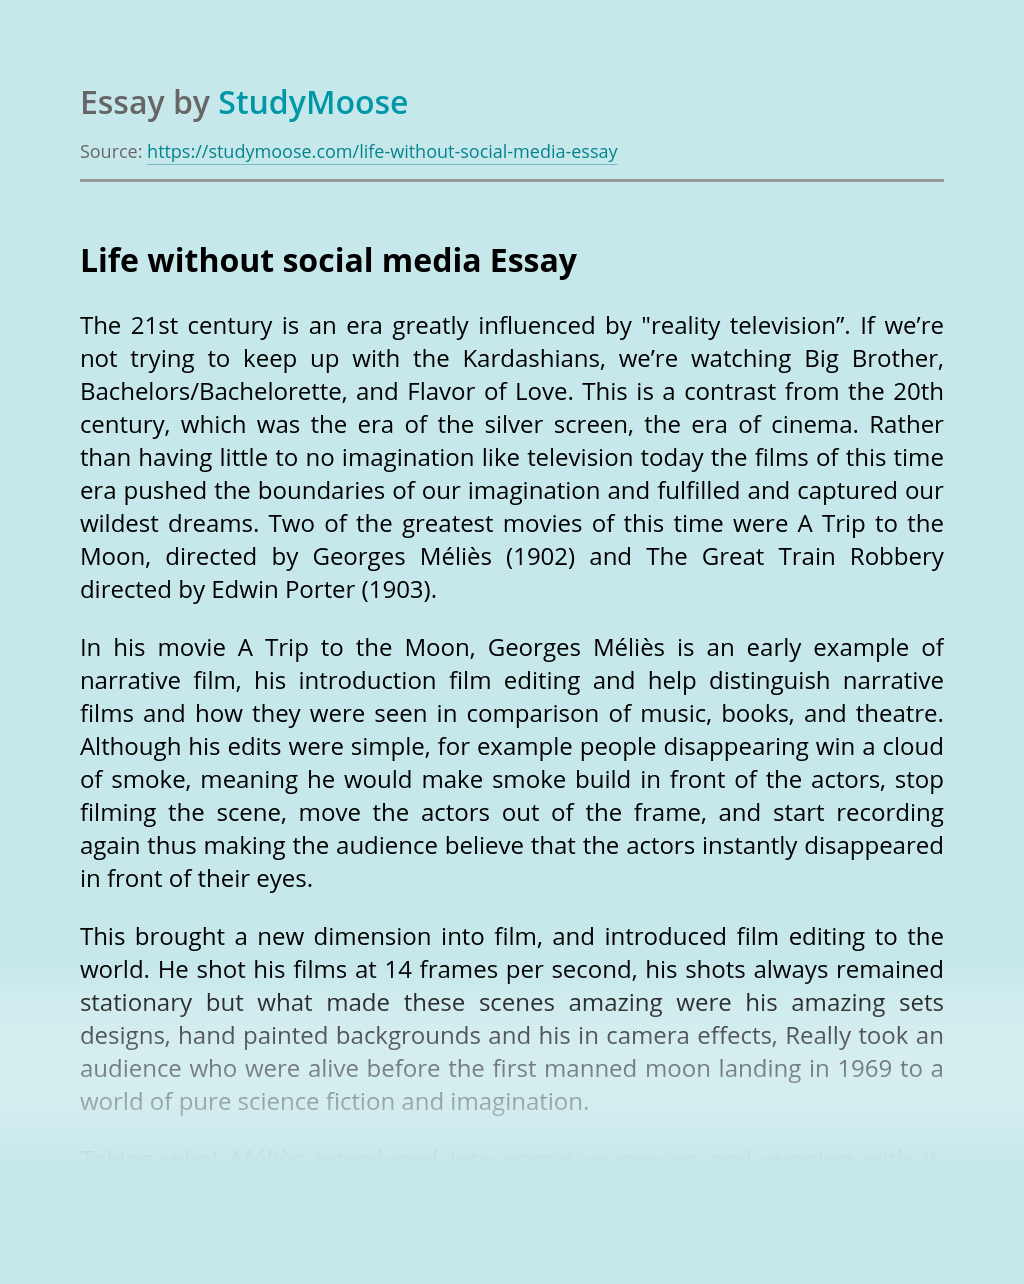 Life without social media